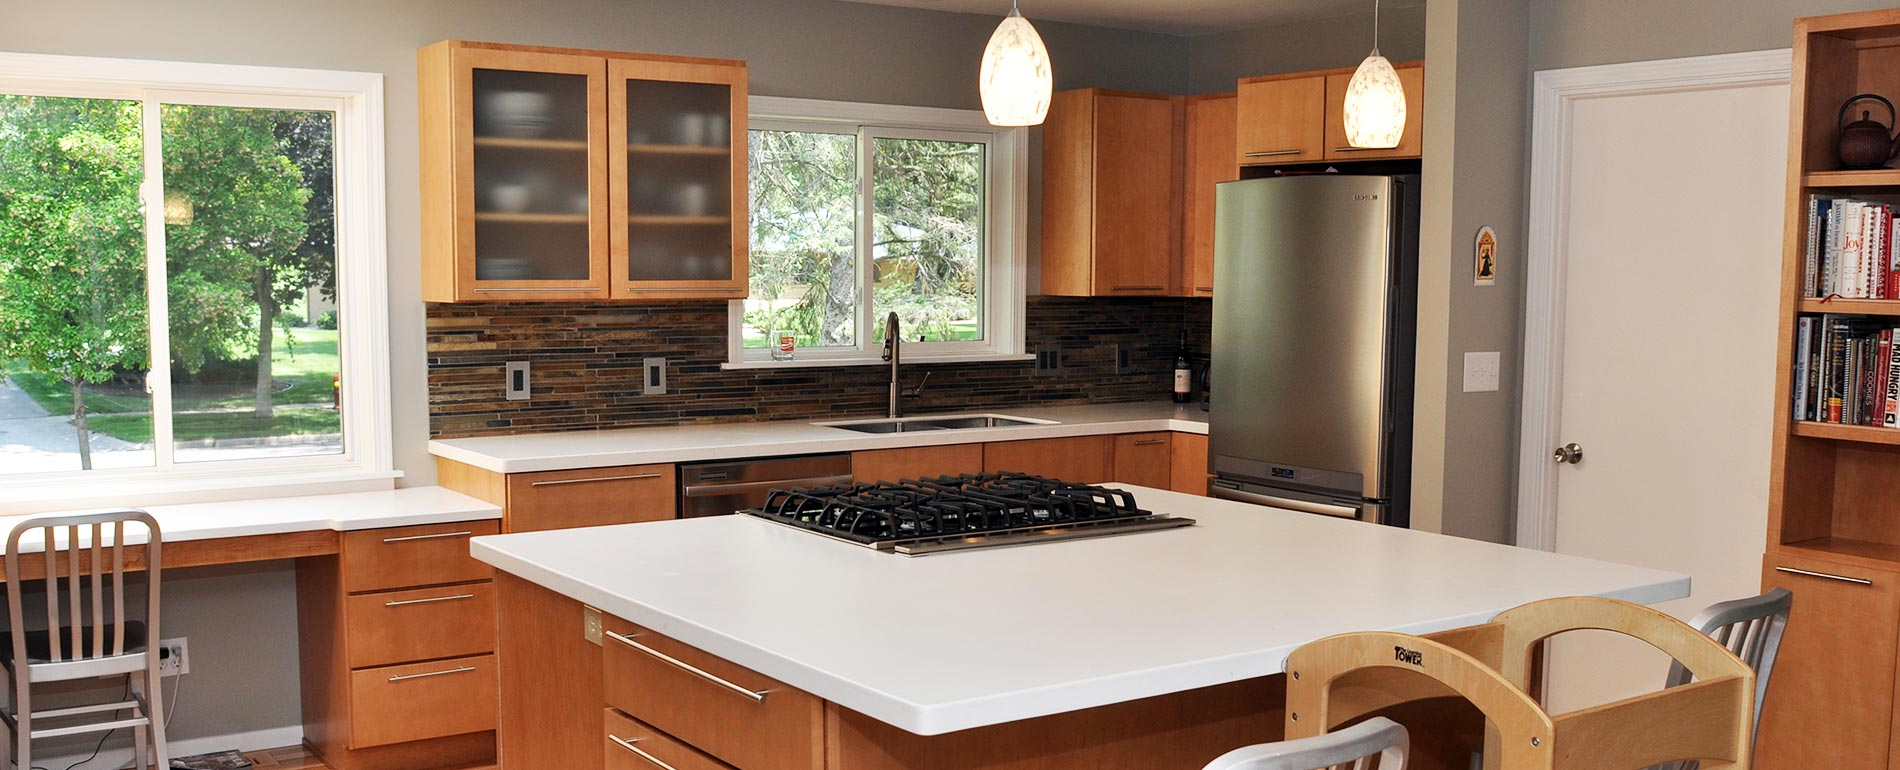 Home Remodeling Services In Midland, MI | General Contractor